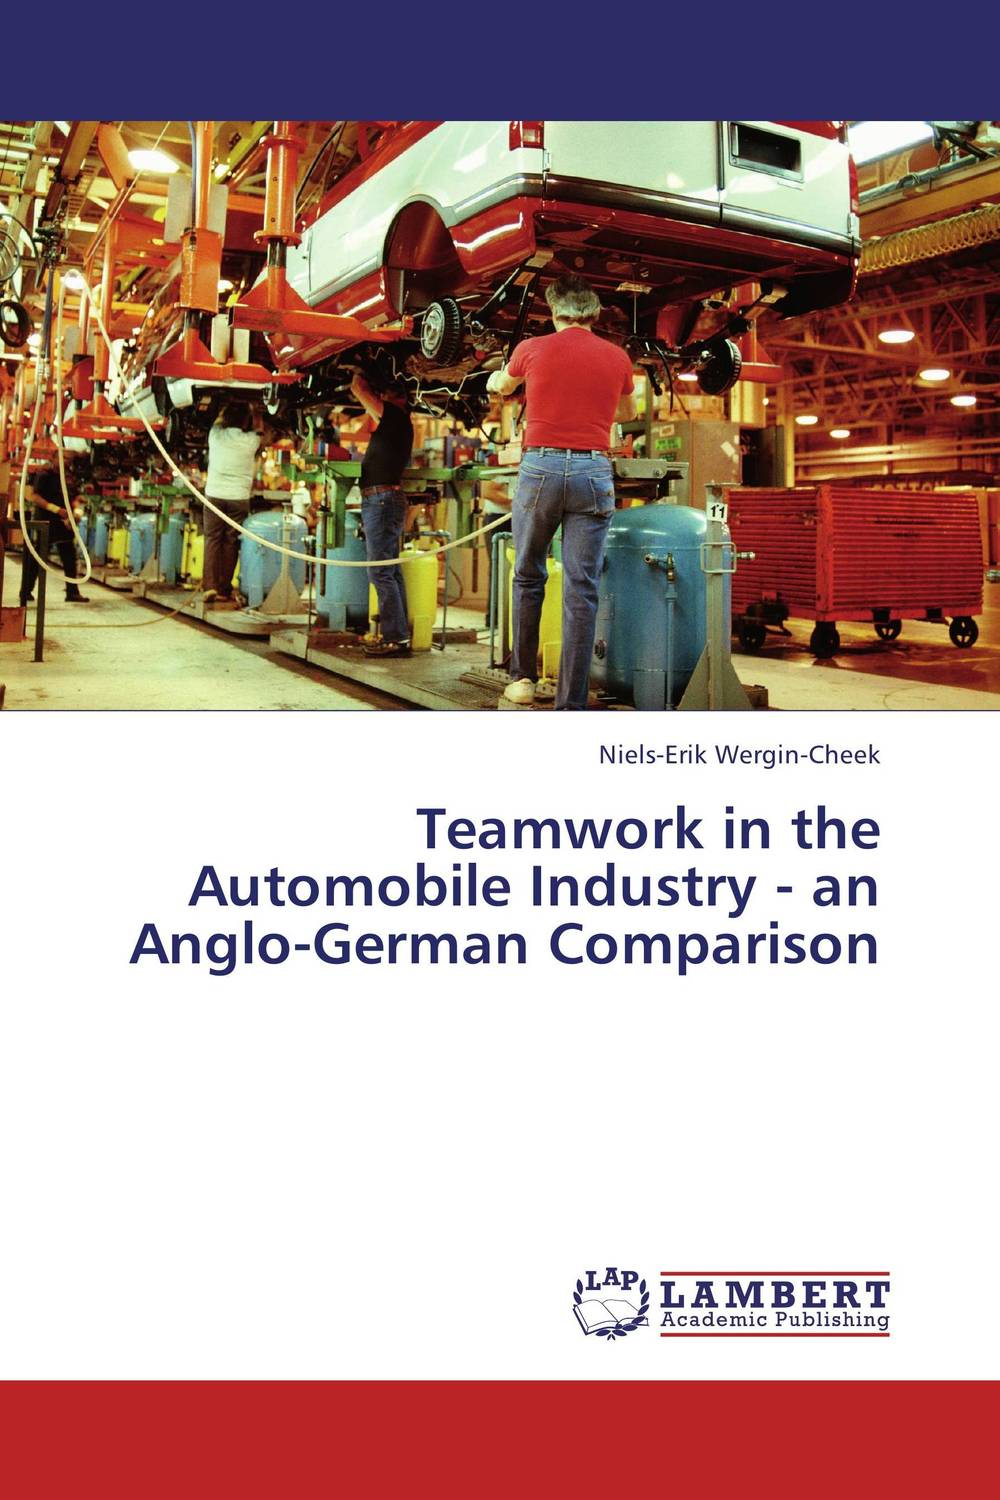 Teamwork in the Automobile Industry - an Anglo-German Comparison